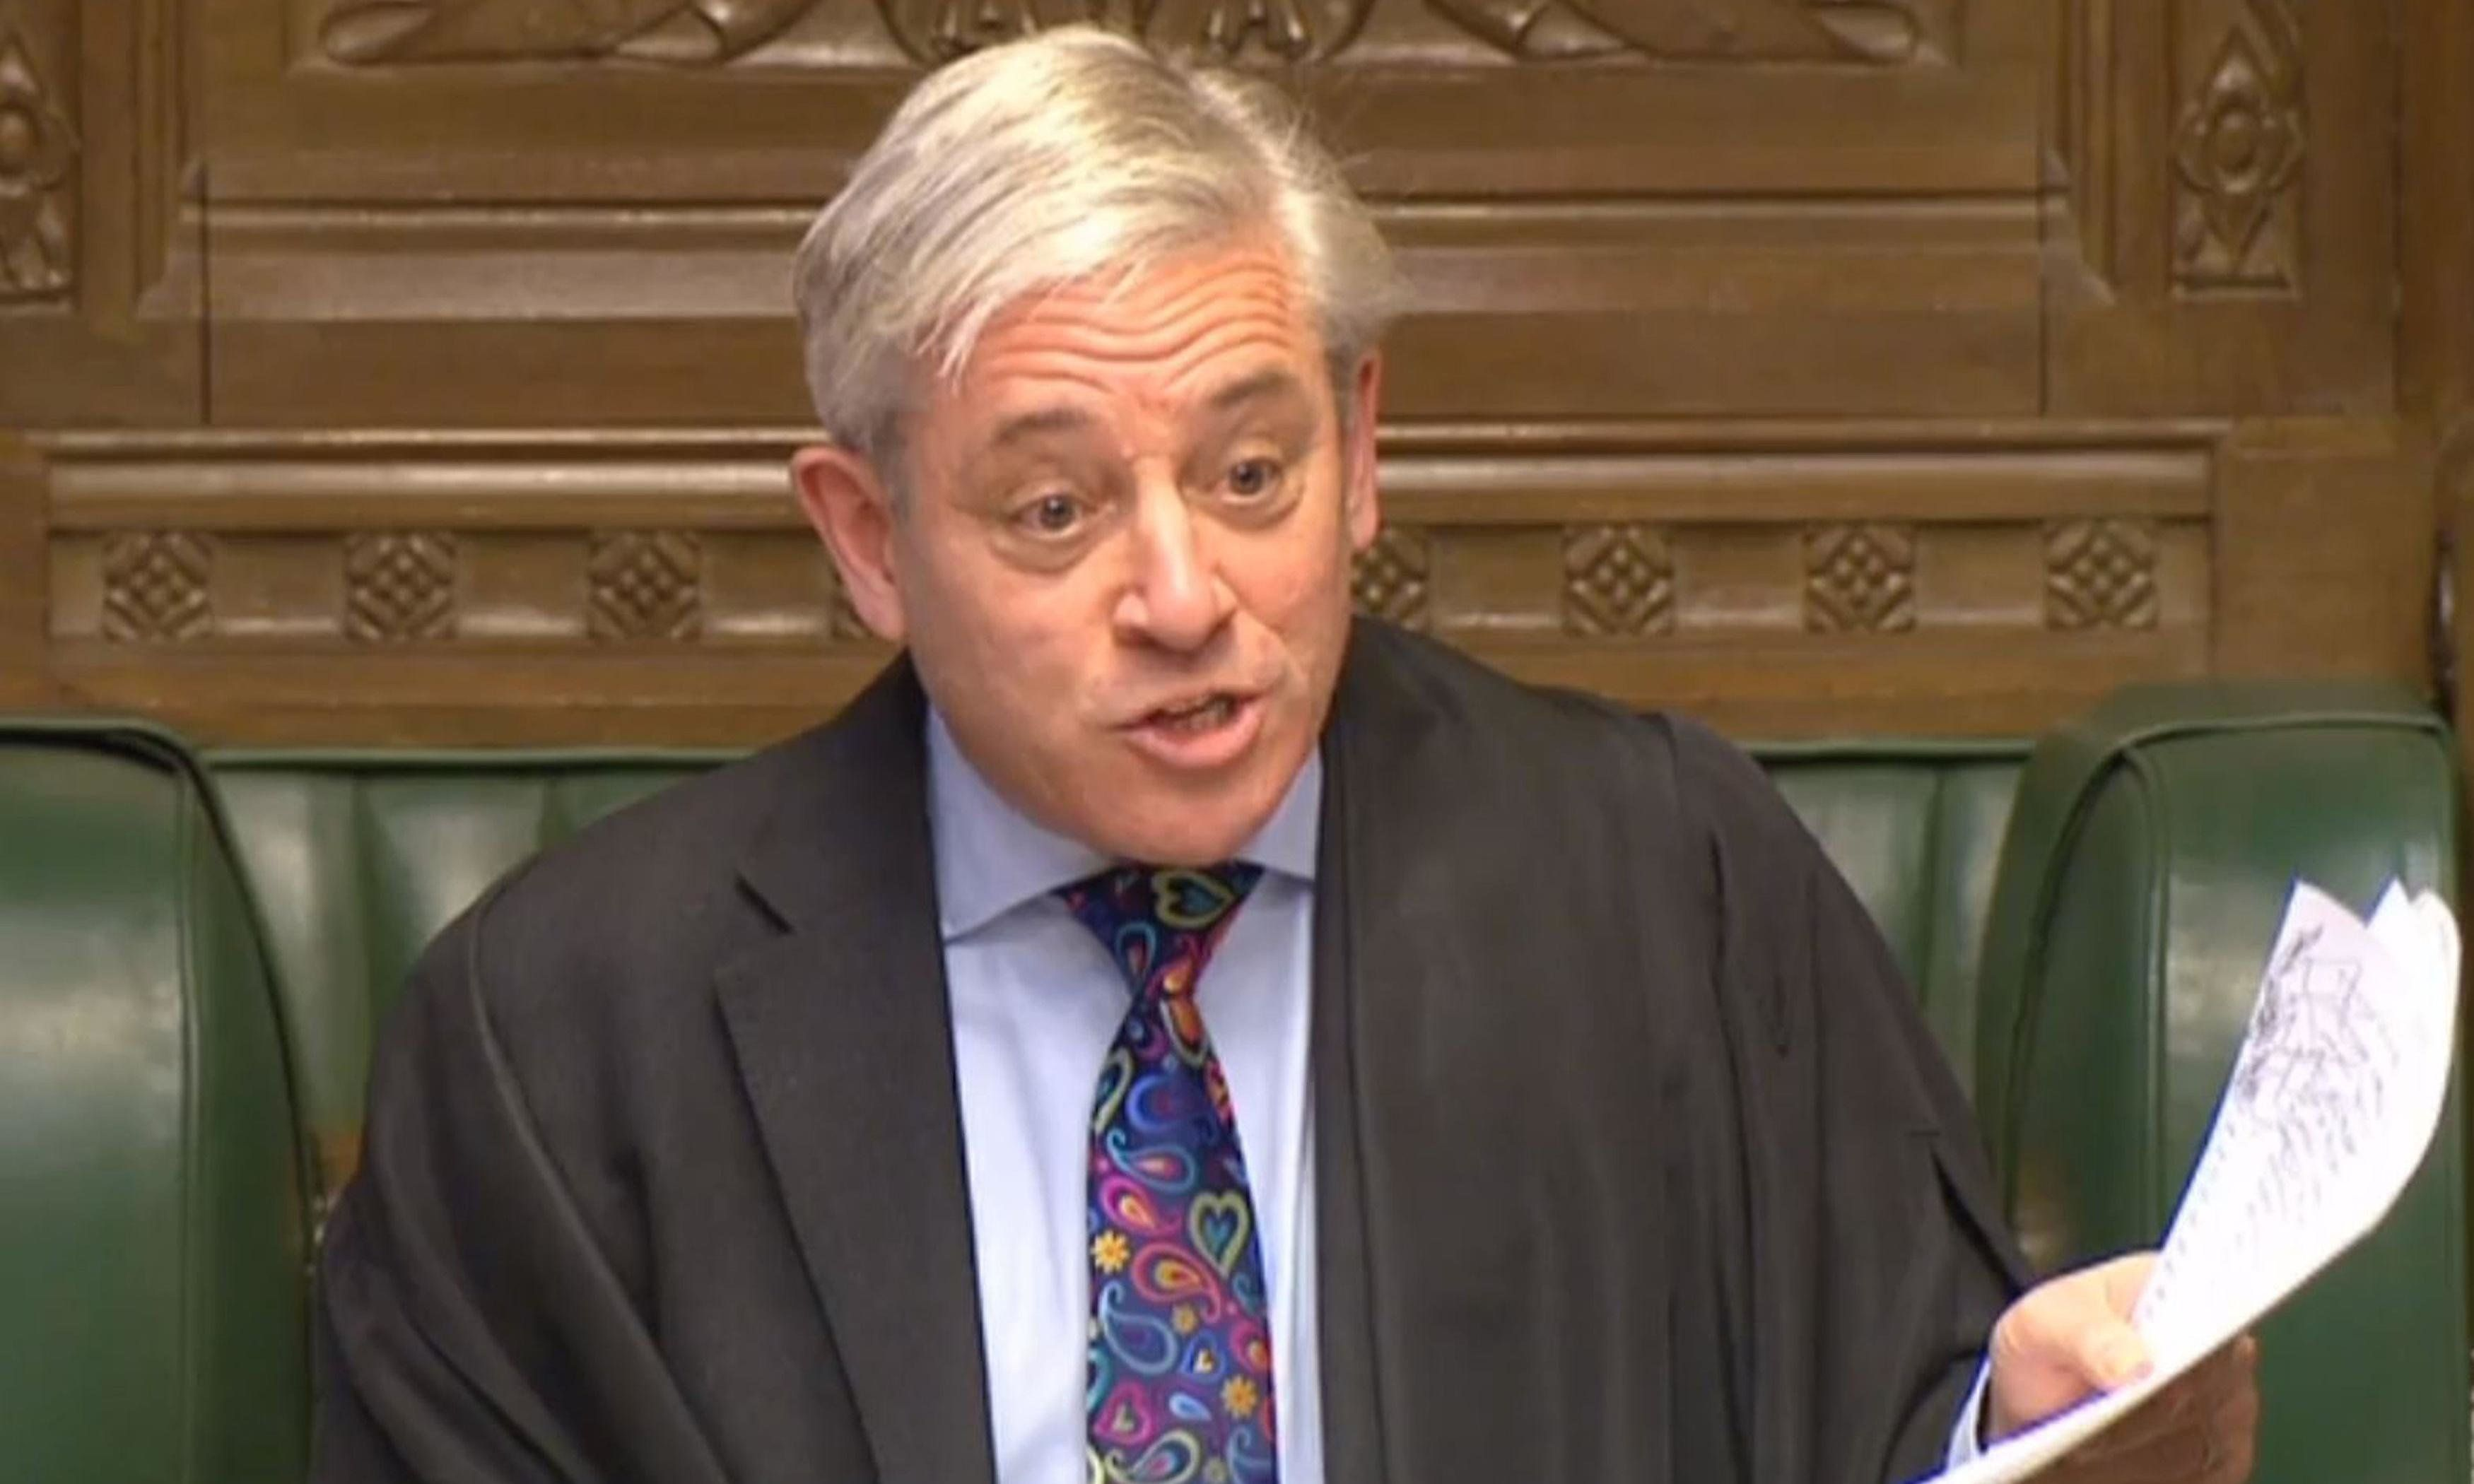 Commons chaplain defends Bercow against bullying claims